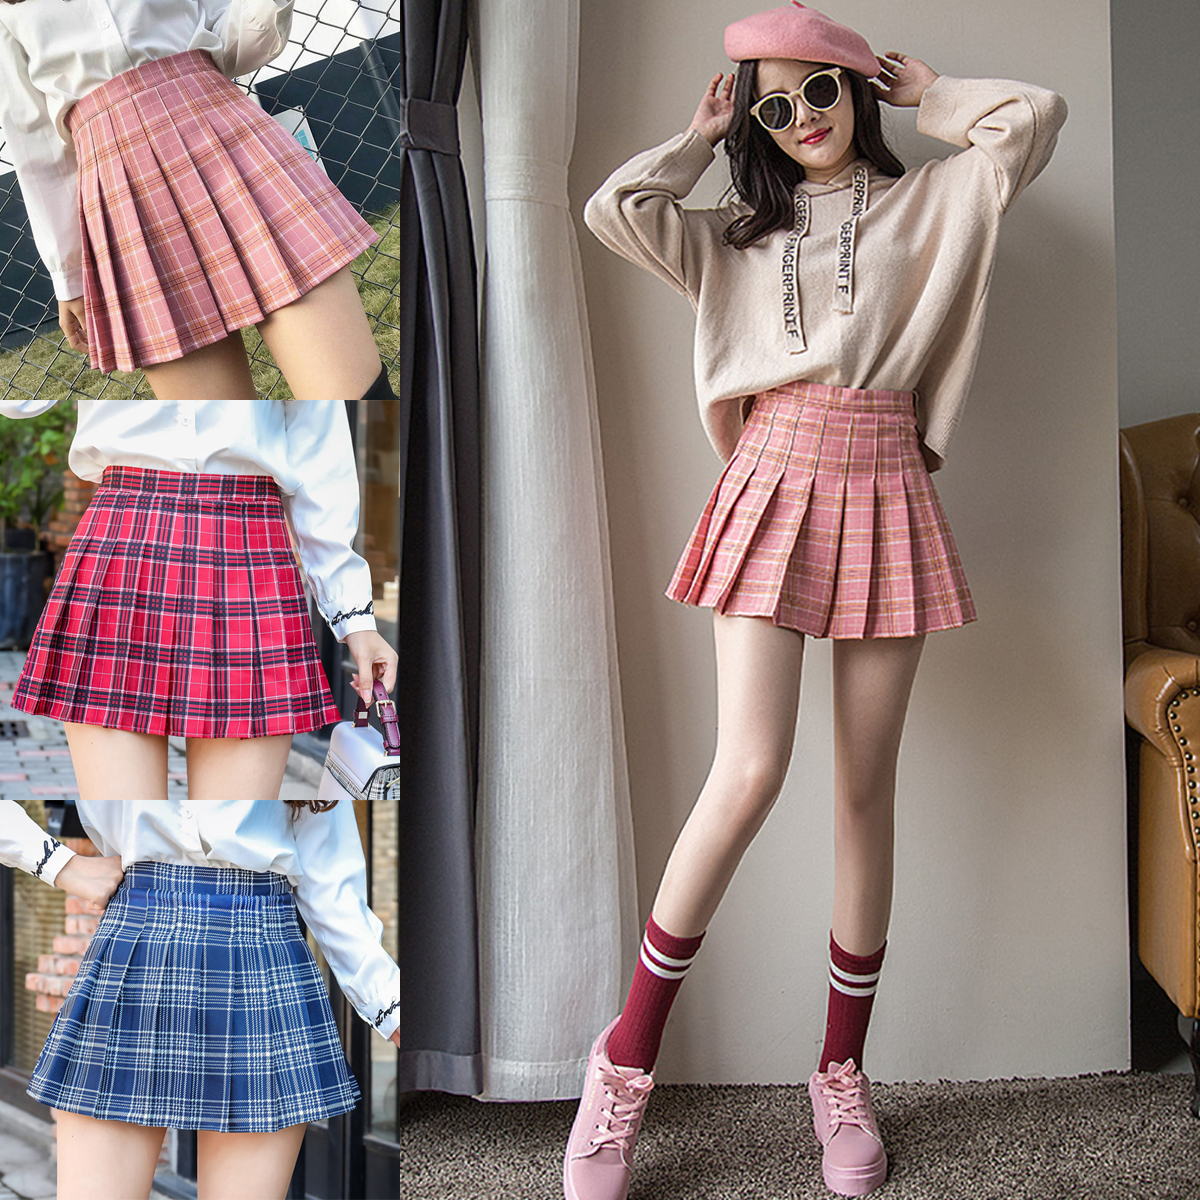 Women Summer Bottom Pink Plaid Mini Skirt Femme High Waist Pleated Skirts For Female Sport Training Skirt Uniform Tennis Skirts